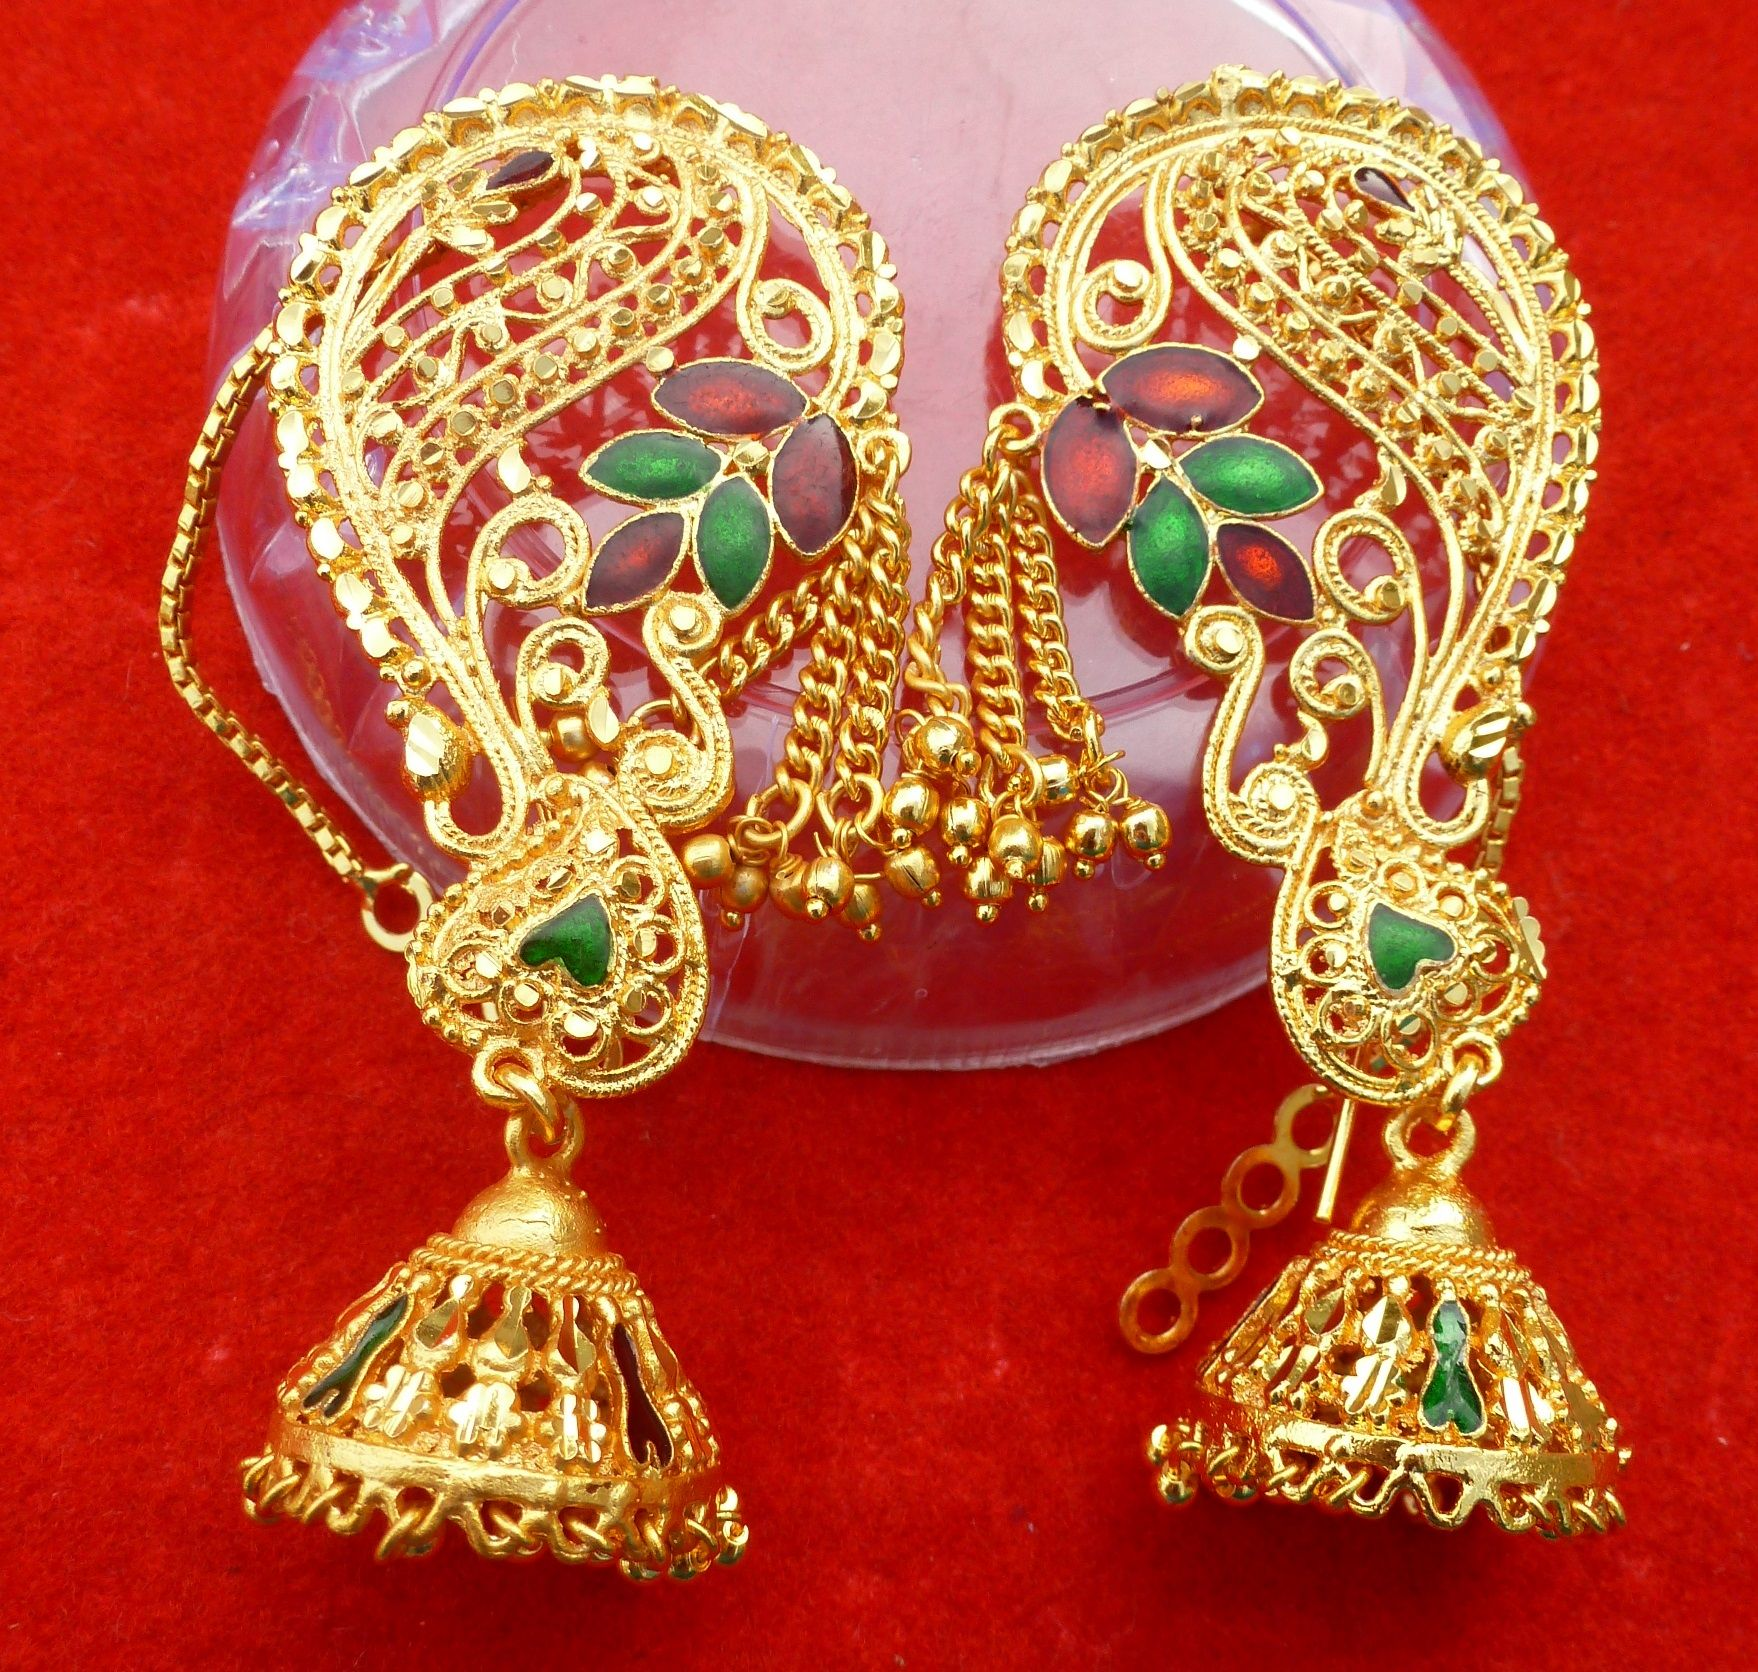 Indian 22k Gold Plated Wedding Necklace Earrings Jewelry: 22K Gold Plated Indian Full Ear Earrings Jhumka Variation